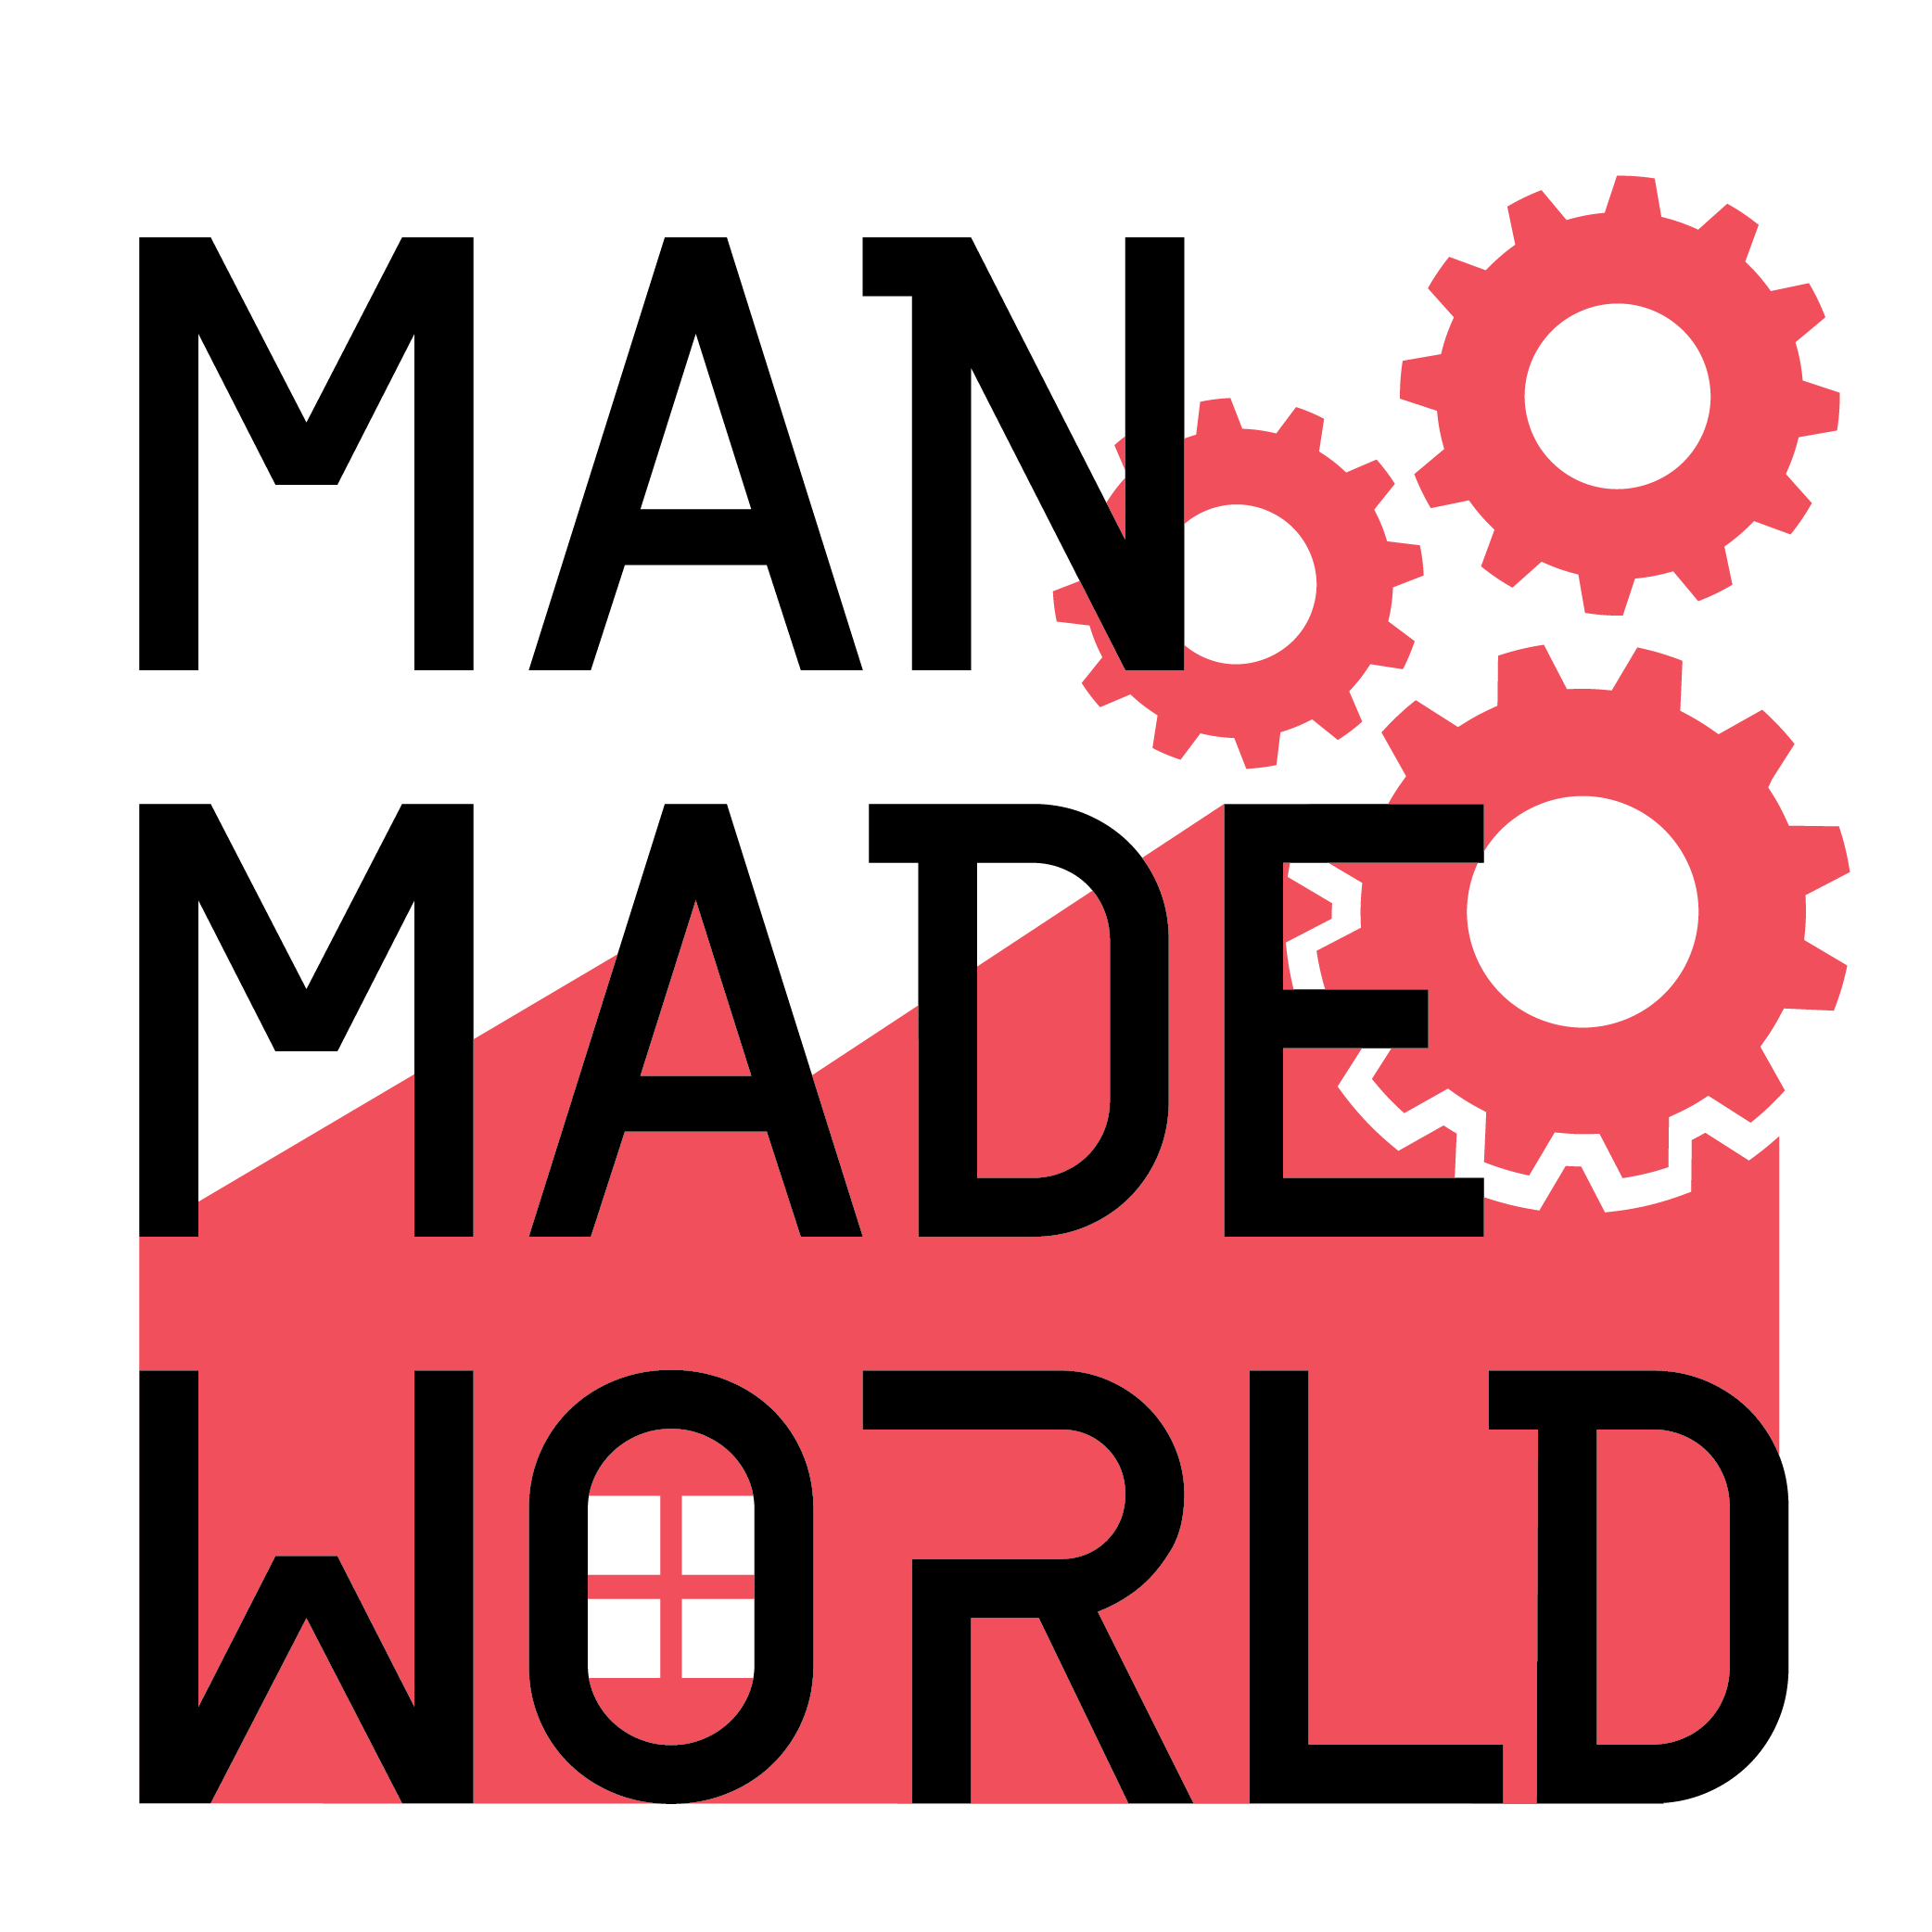 Man-Made World